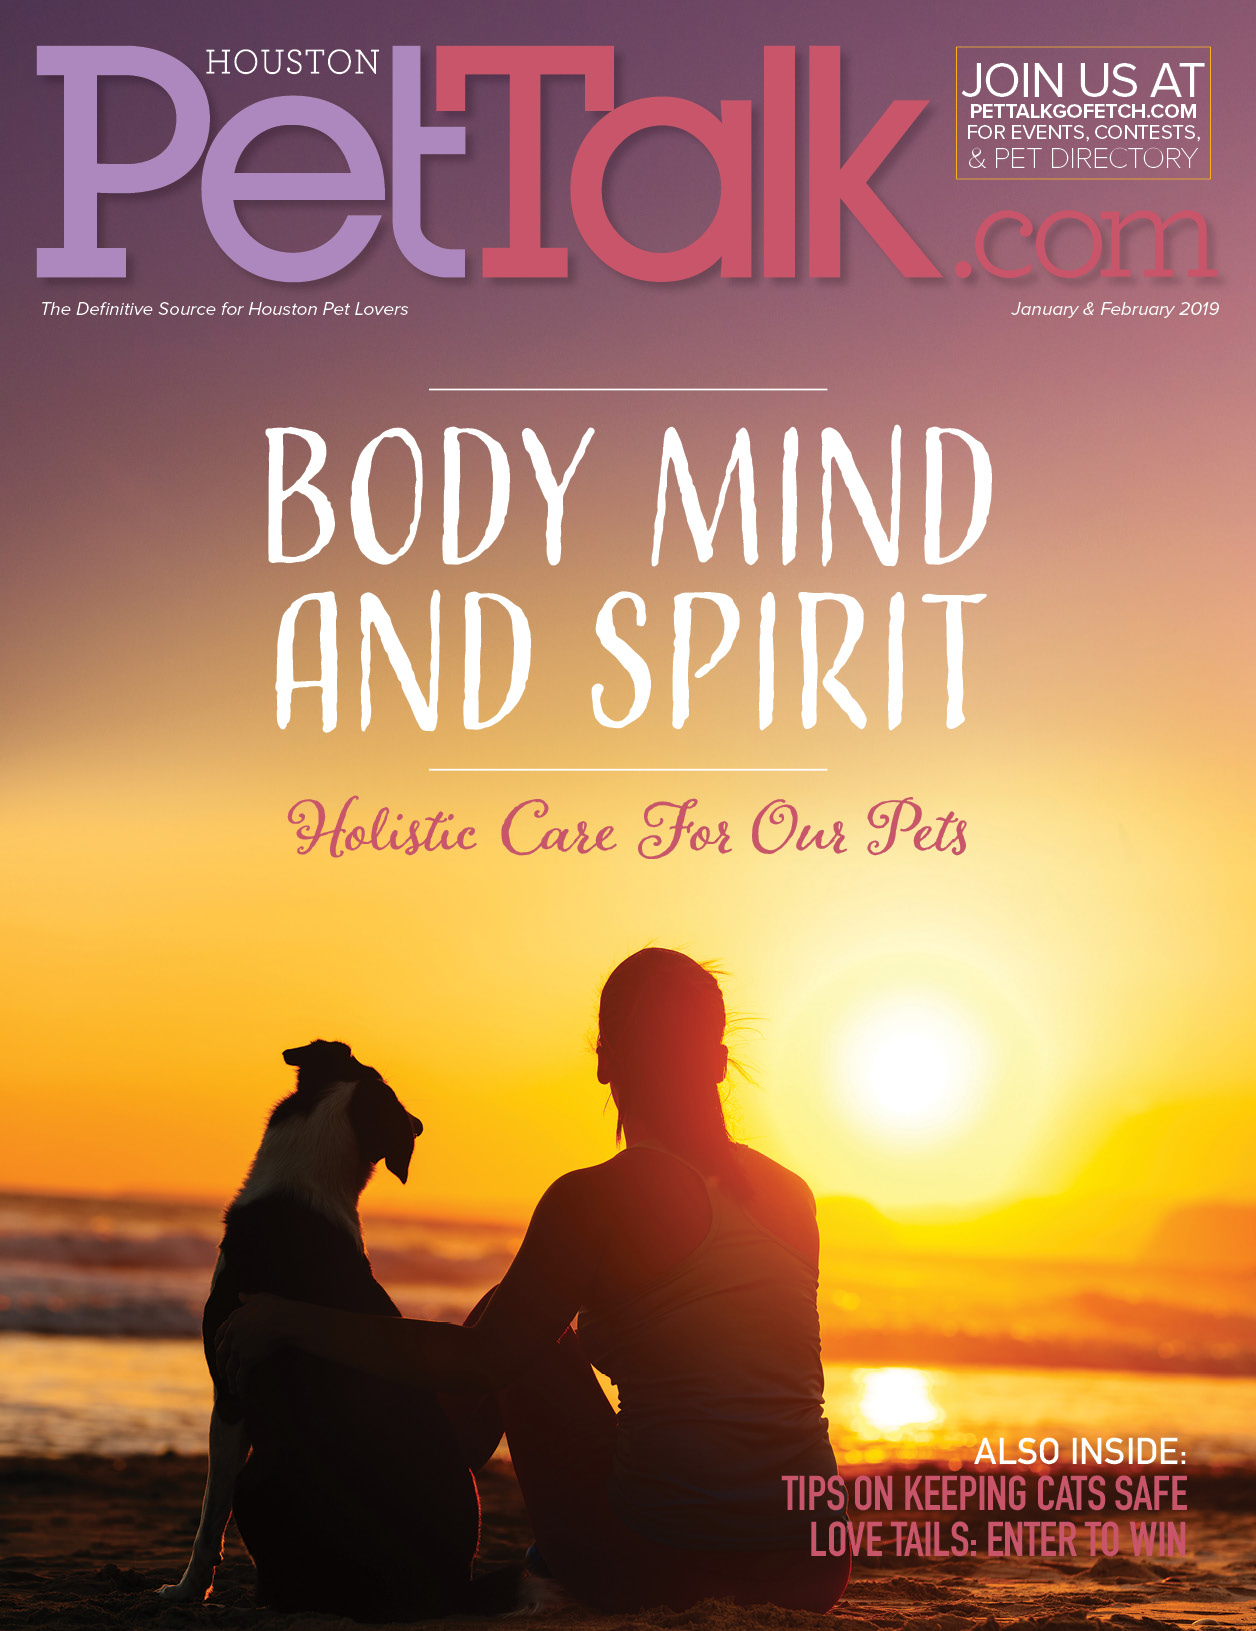 January/February 2019 Digital Issue of Houston PetTalk